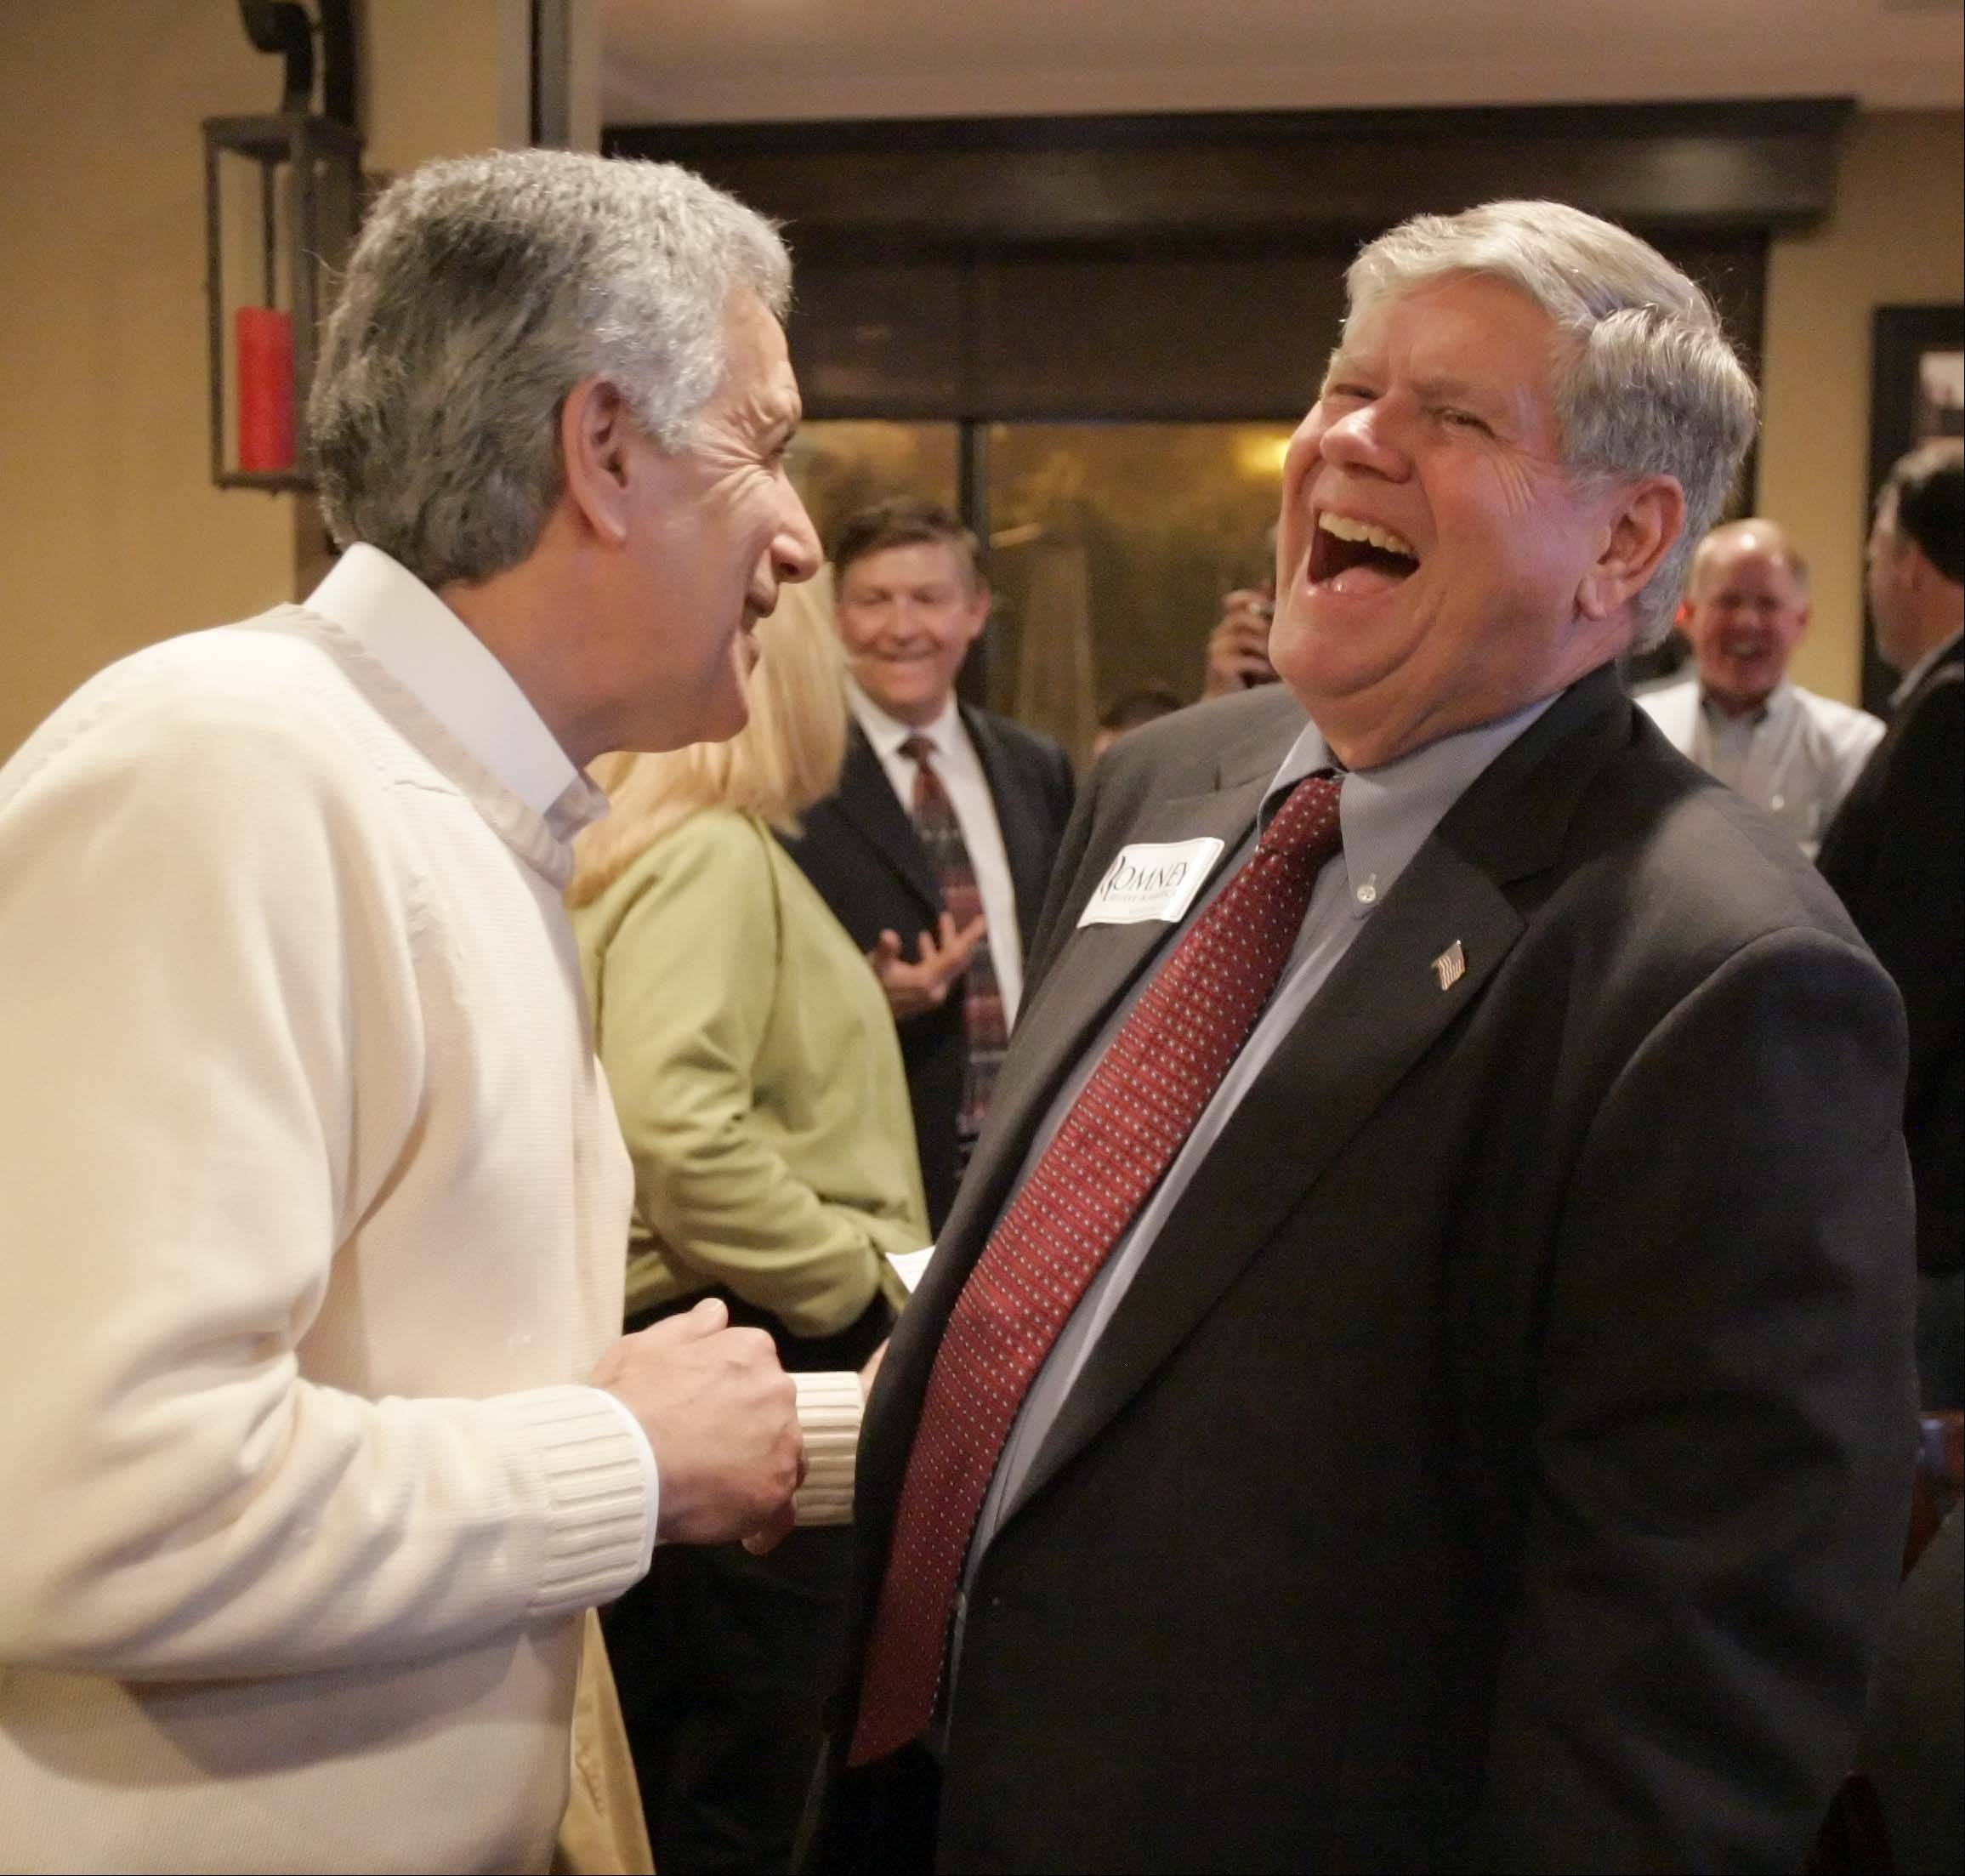 Kane County Chair candidate Chris Lauzen shares a laugh with 25th Senate District candidate Jim Oberweis during an election night party at Aurelio's Pizza in Geneva. Both were victorious in their campaigns.